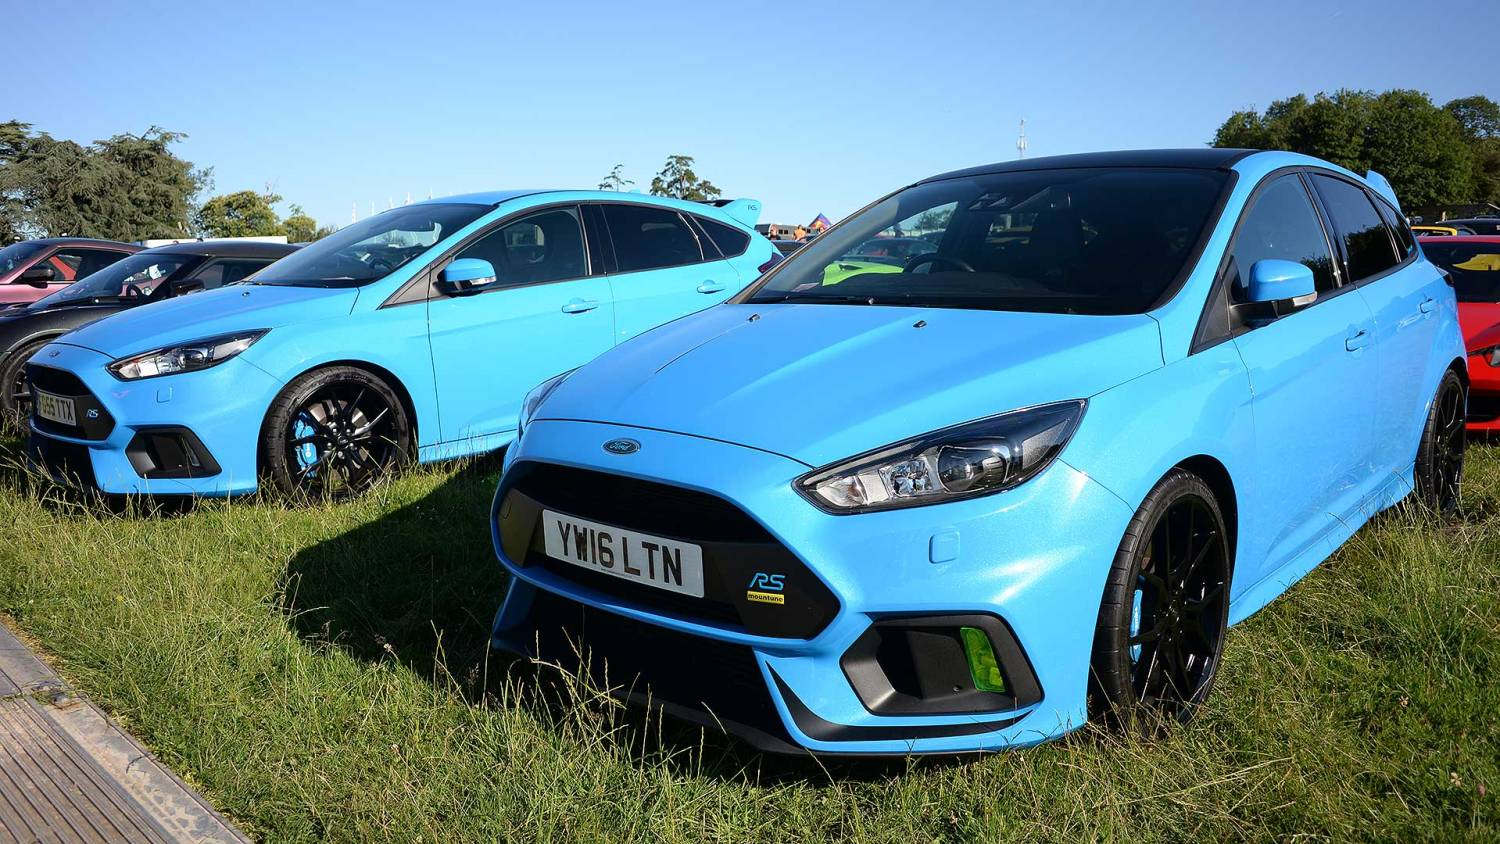 The cars petrolheads drive to Goodwood 2019